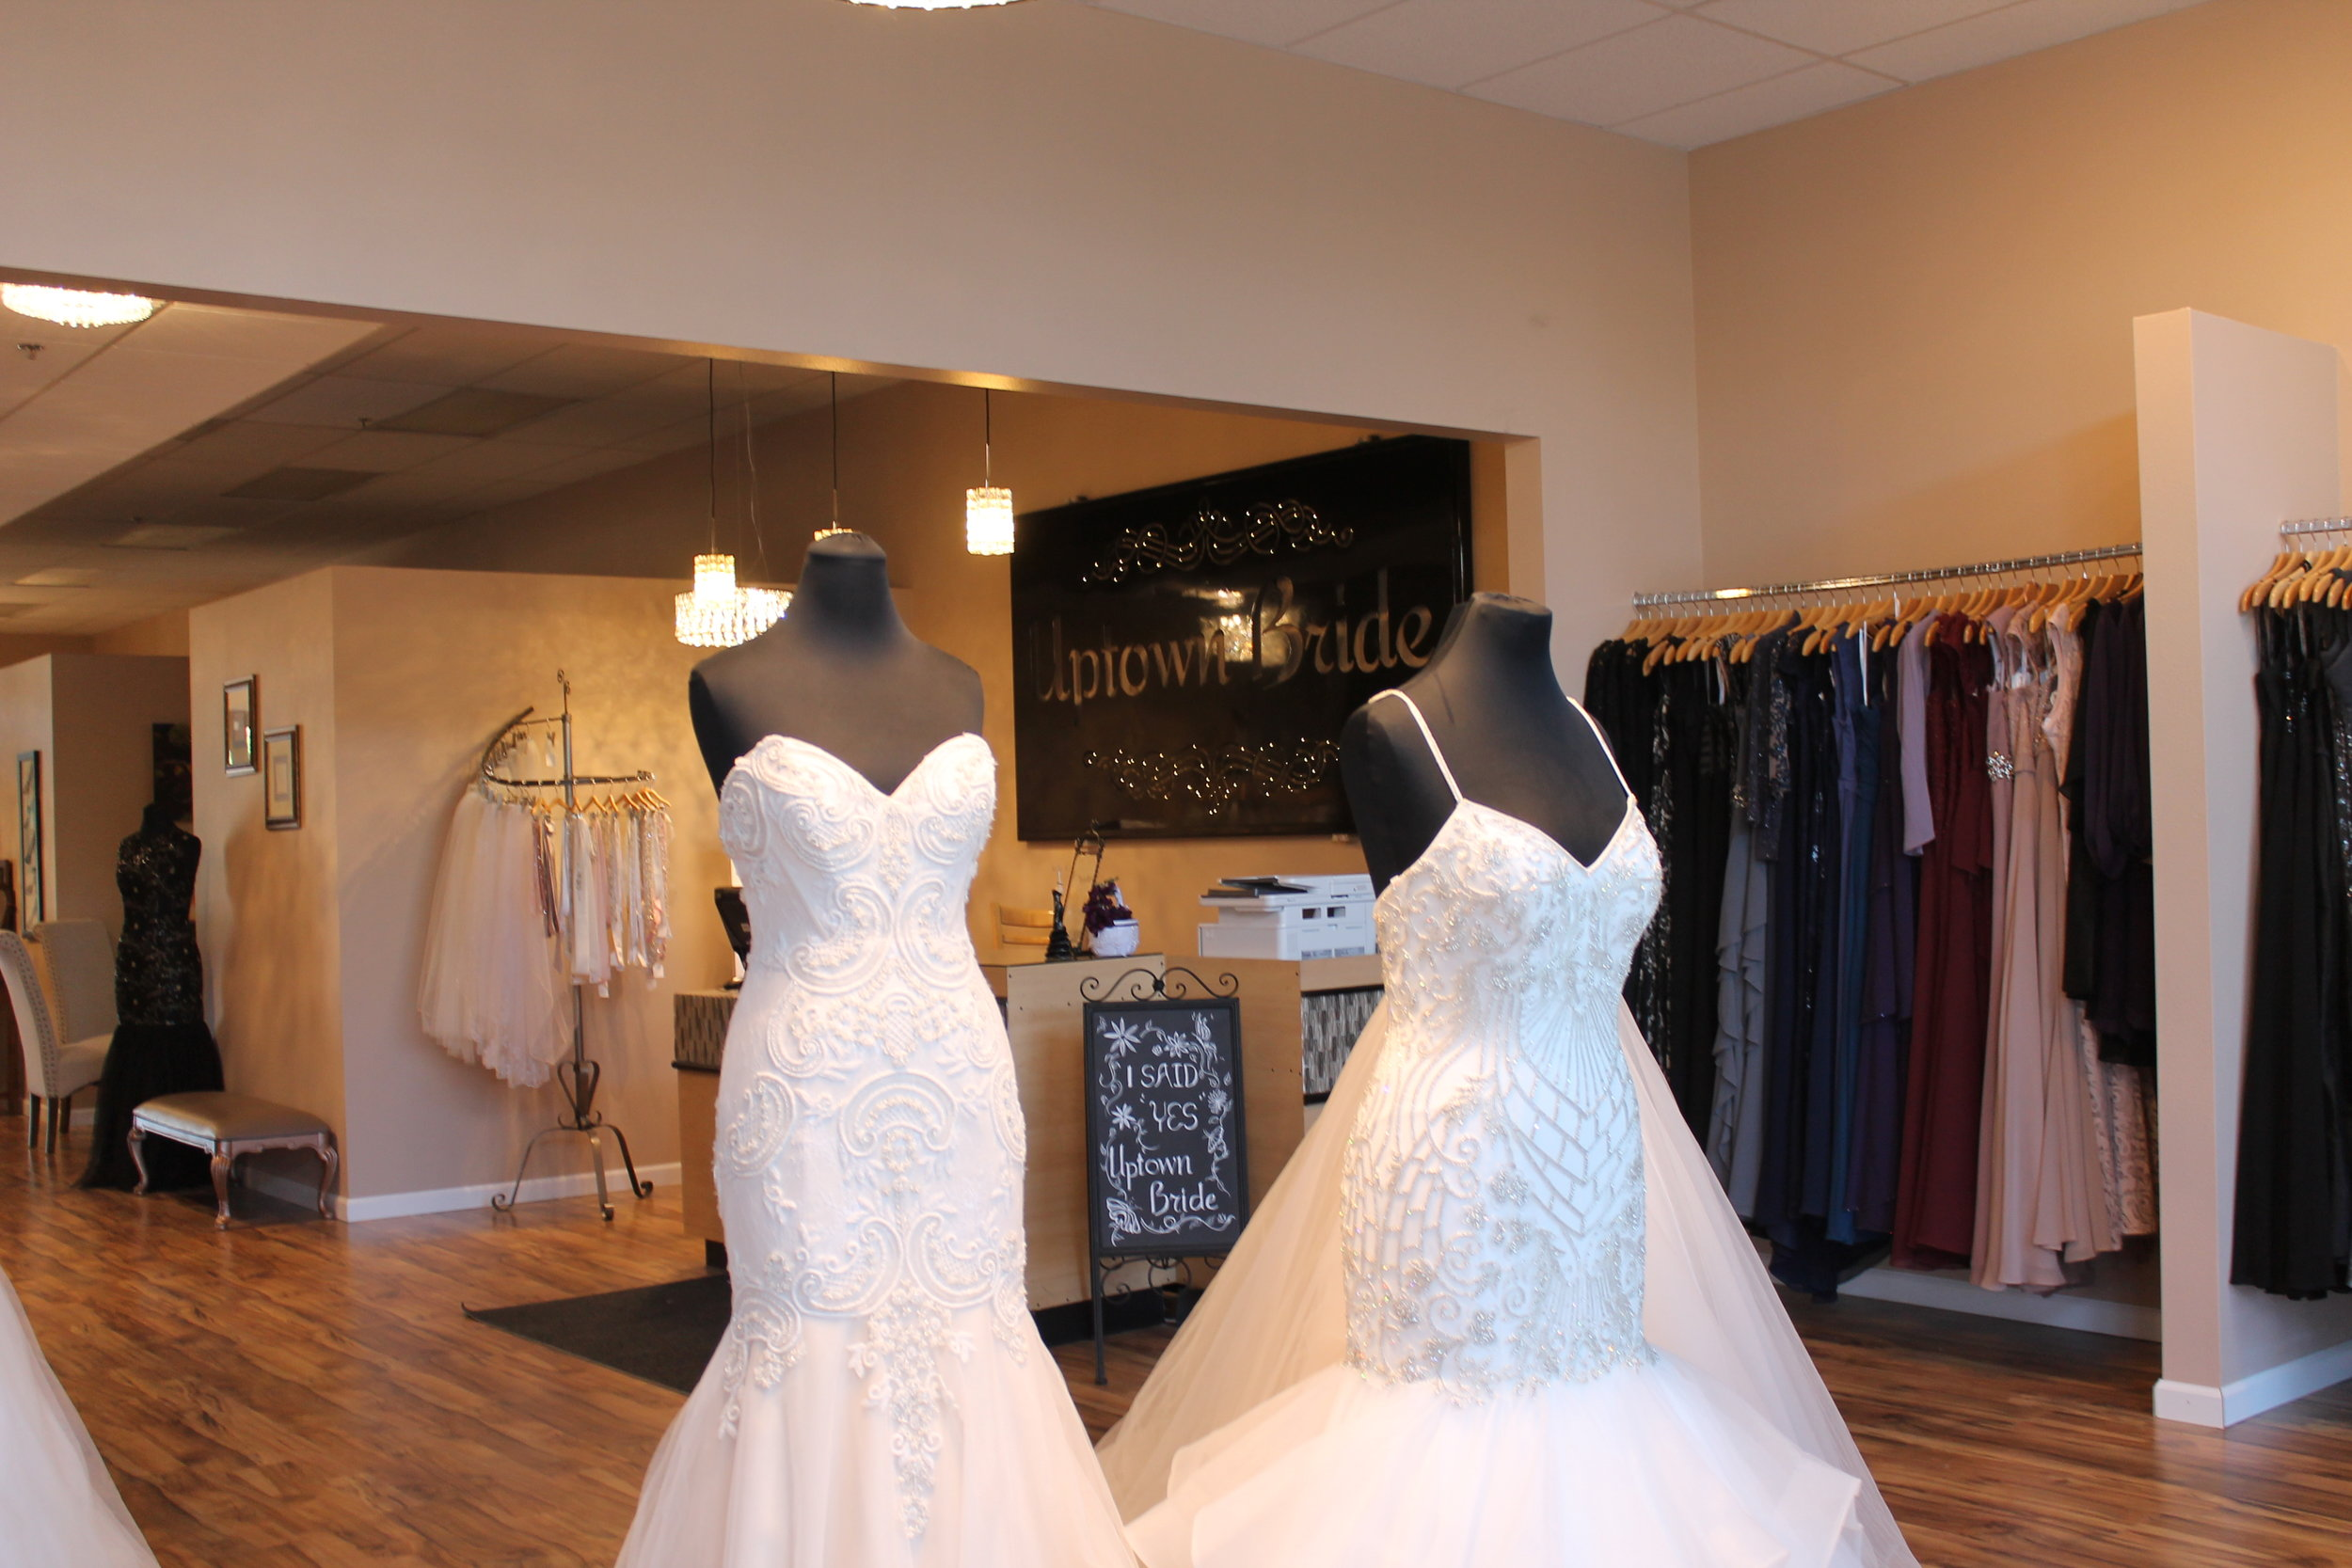 We're officially open here at Uptown Bride!